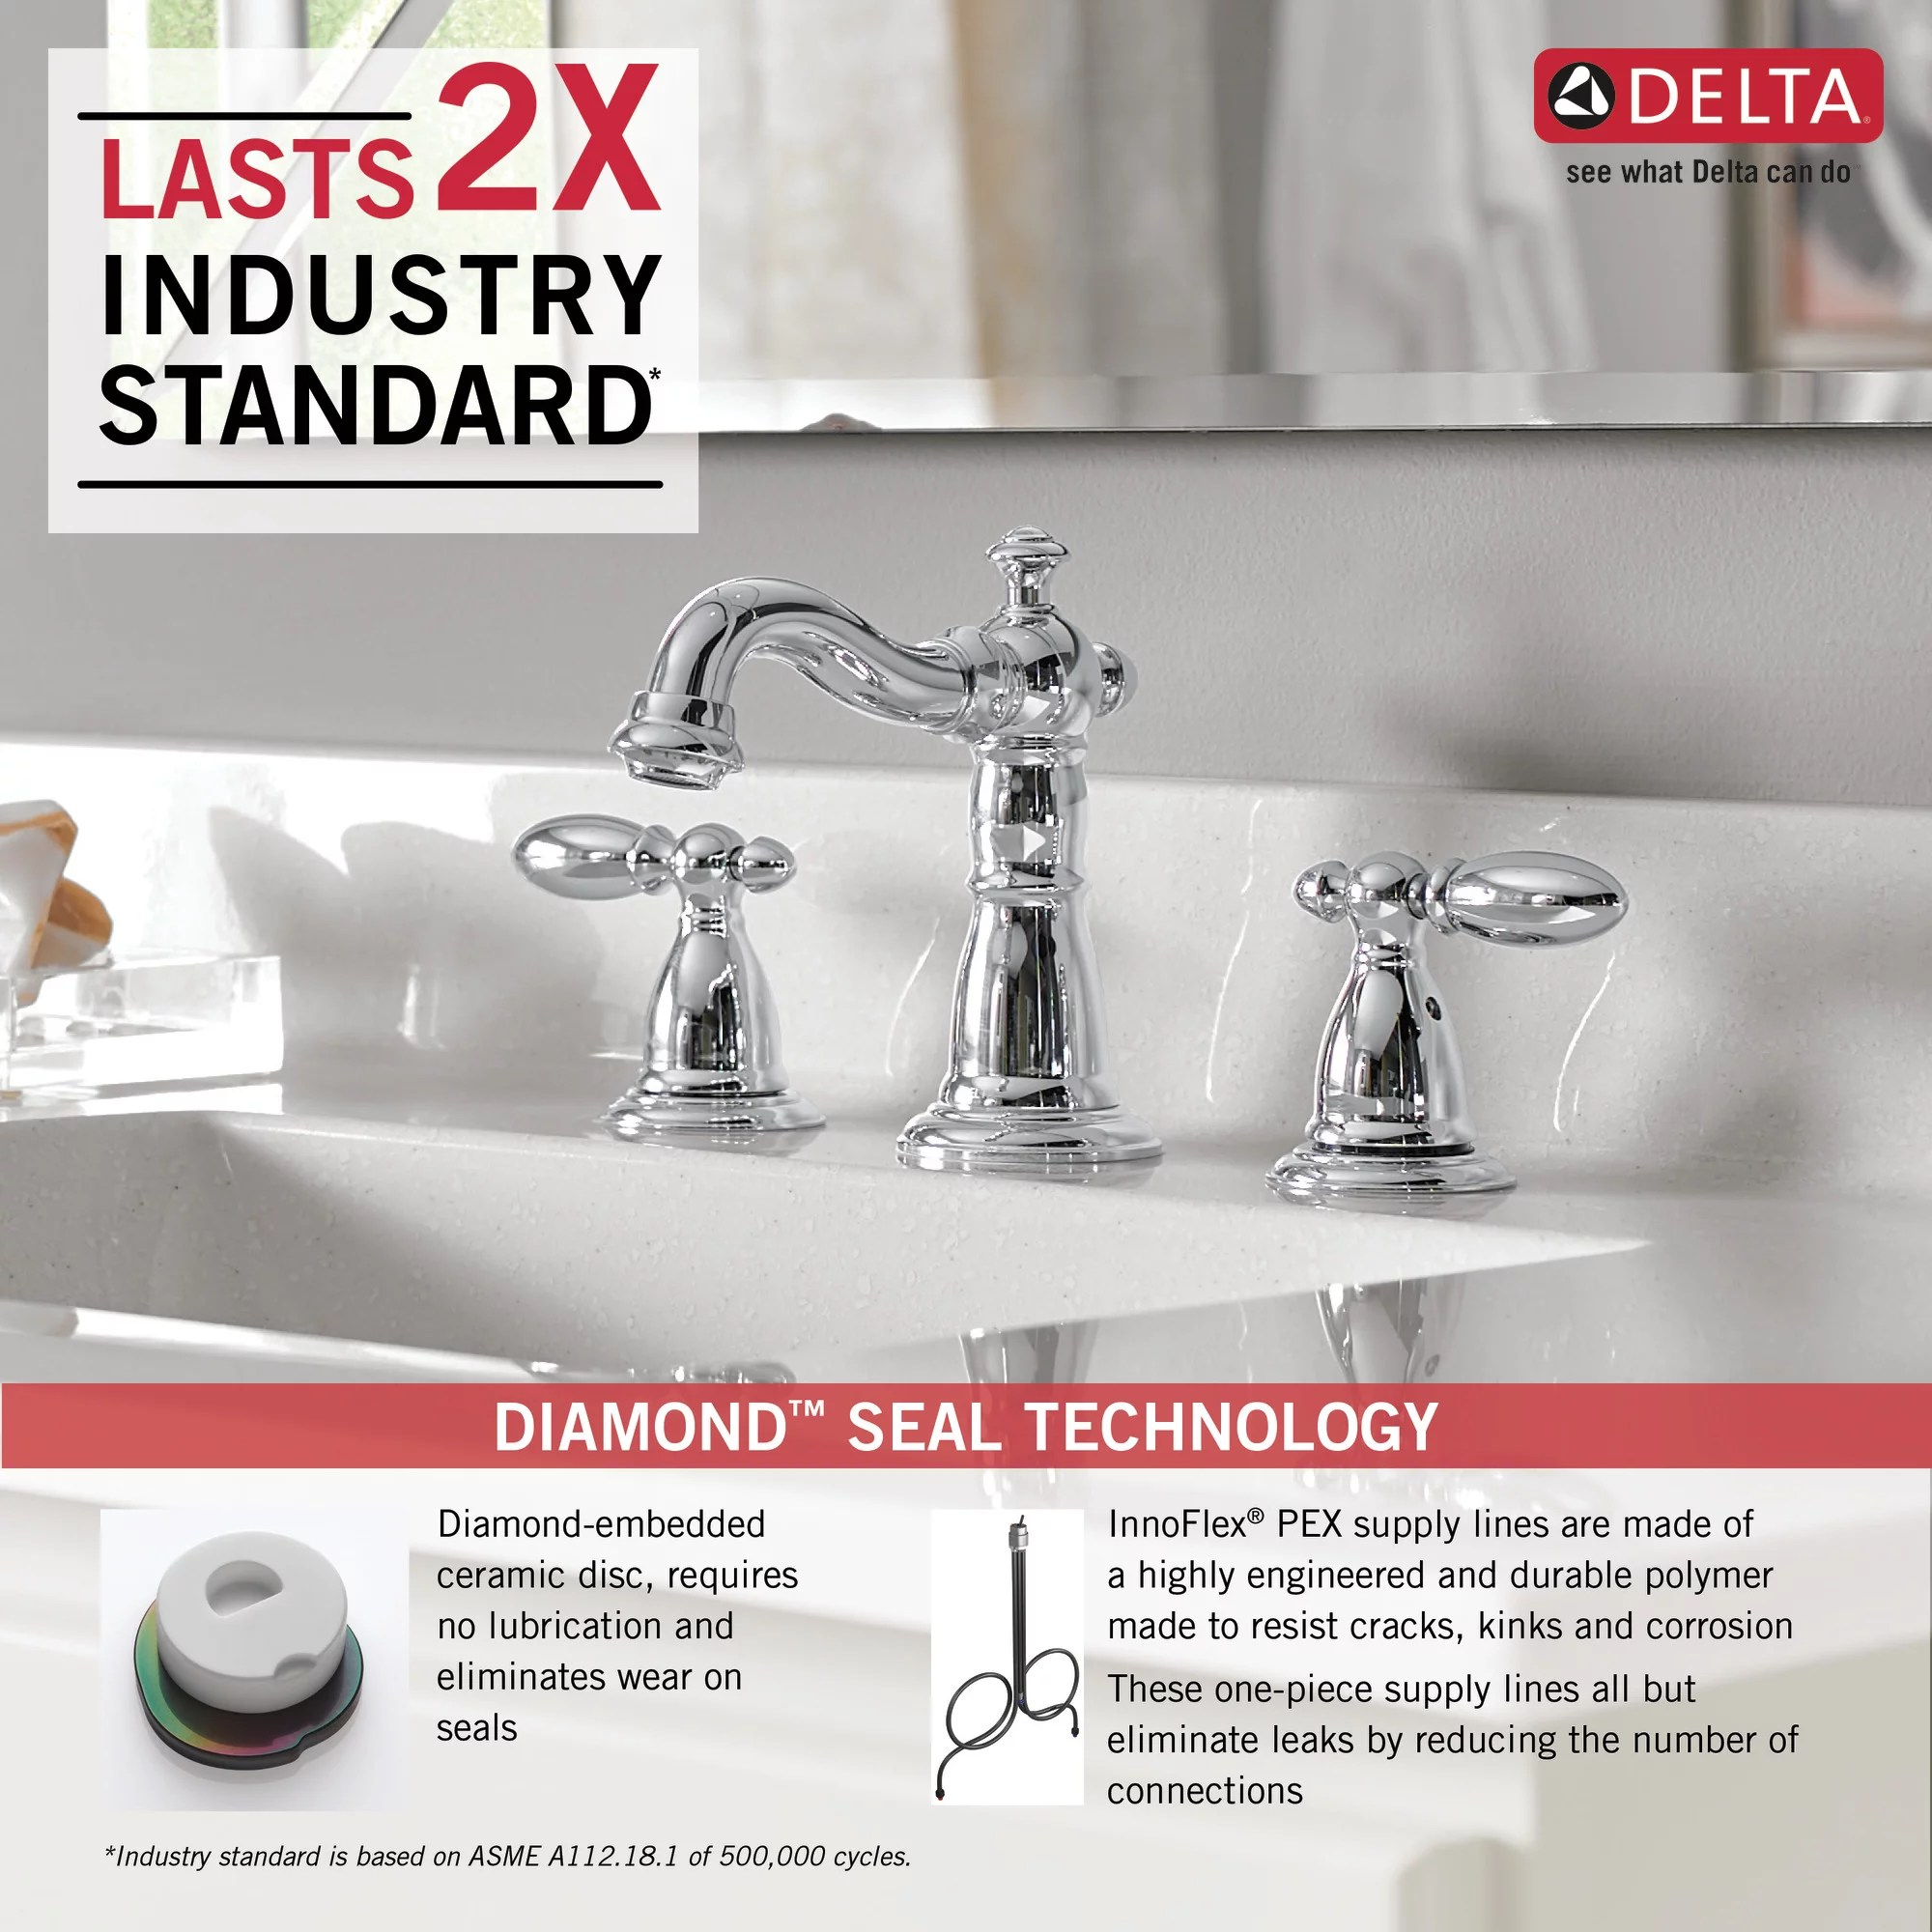 delta faucet victorian 2 handle widespread bathroom faucet with diamond seal technology and metal drain assembly venetian bronze 3555 rbmpu dst commercial bathroom sink faucets